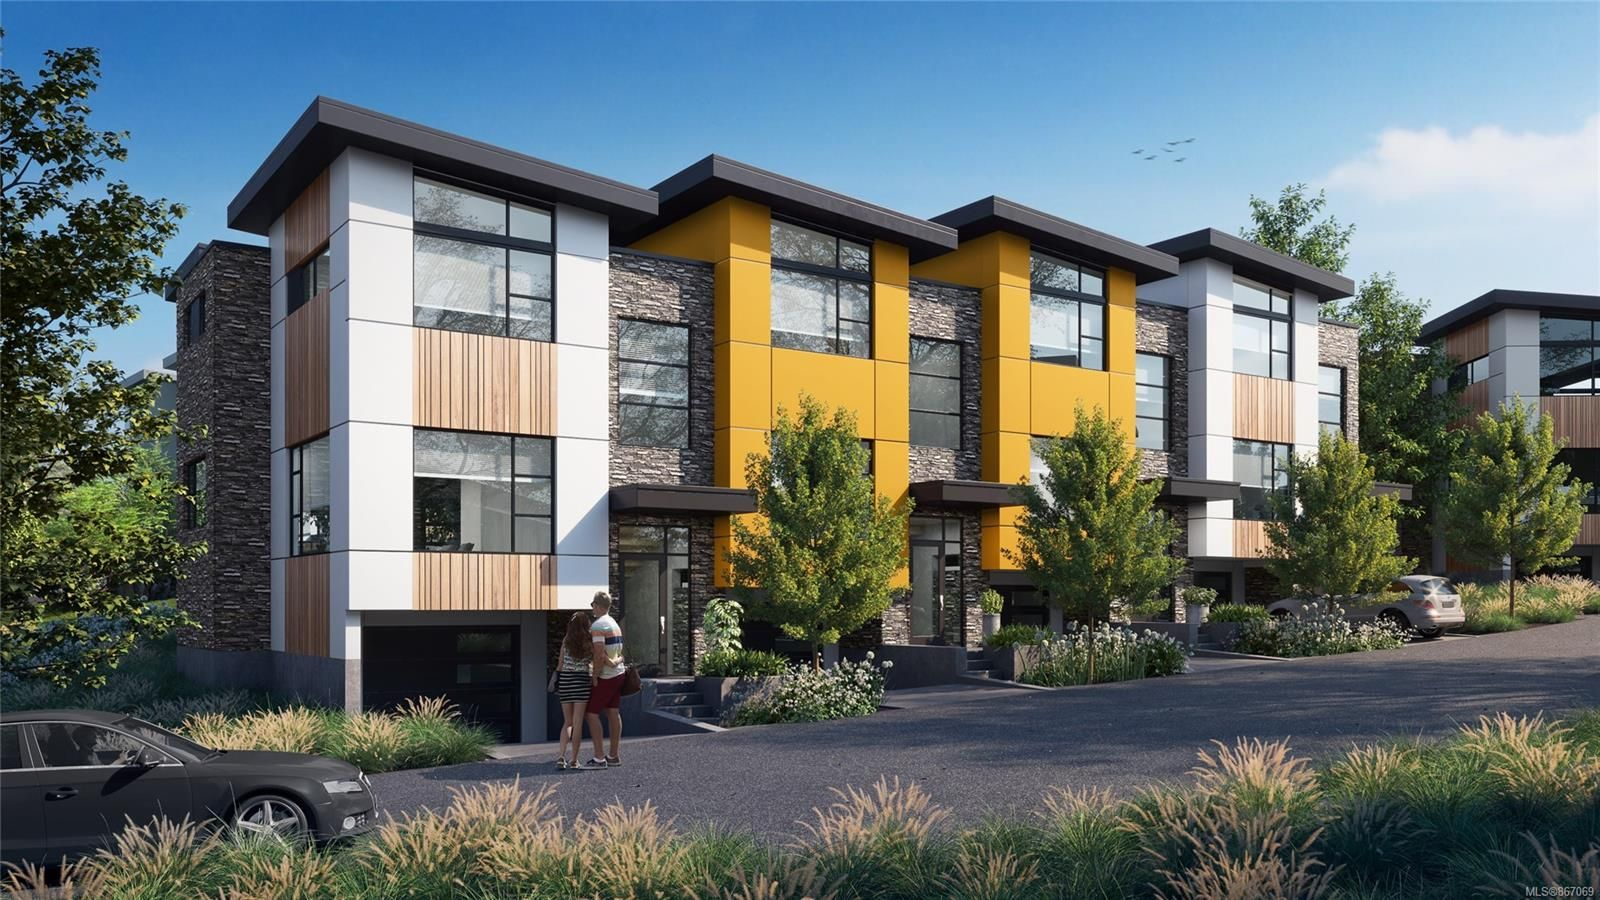 Main Photo: 30 4253 Dieppe Rd in : SE High Quadra Row/Townhouse for sale (Saanich East)  : MLS®# 867069